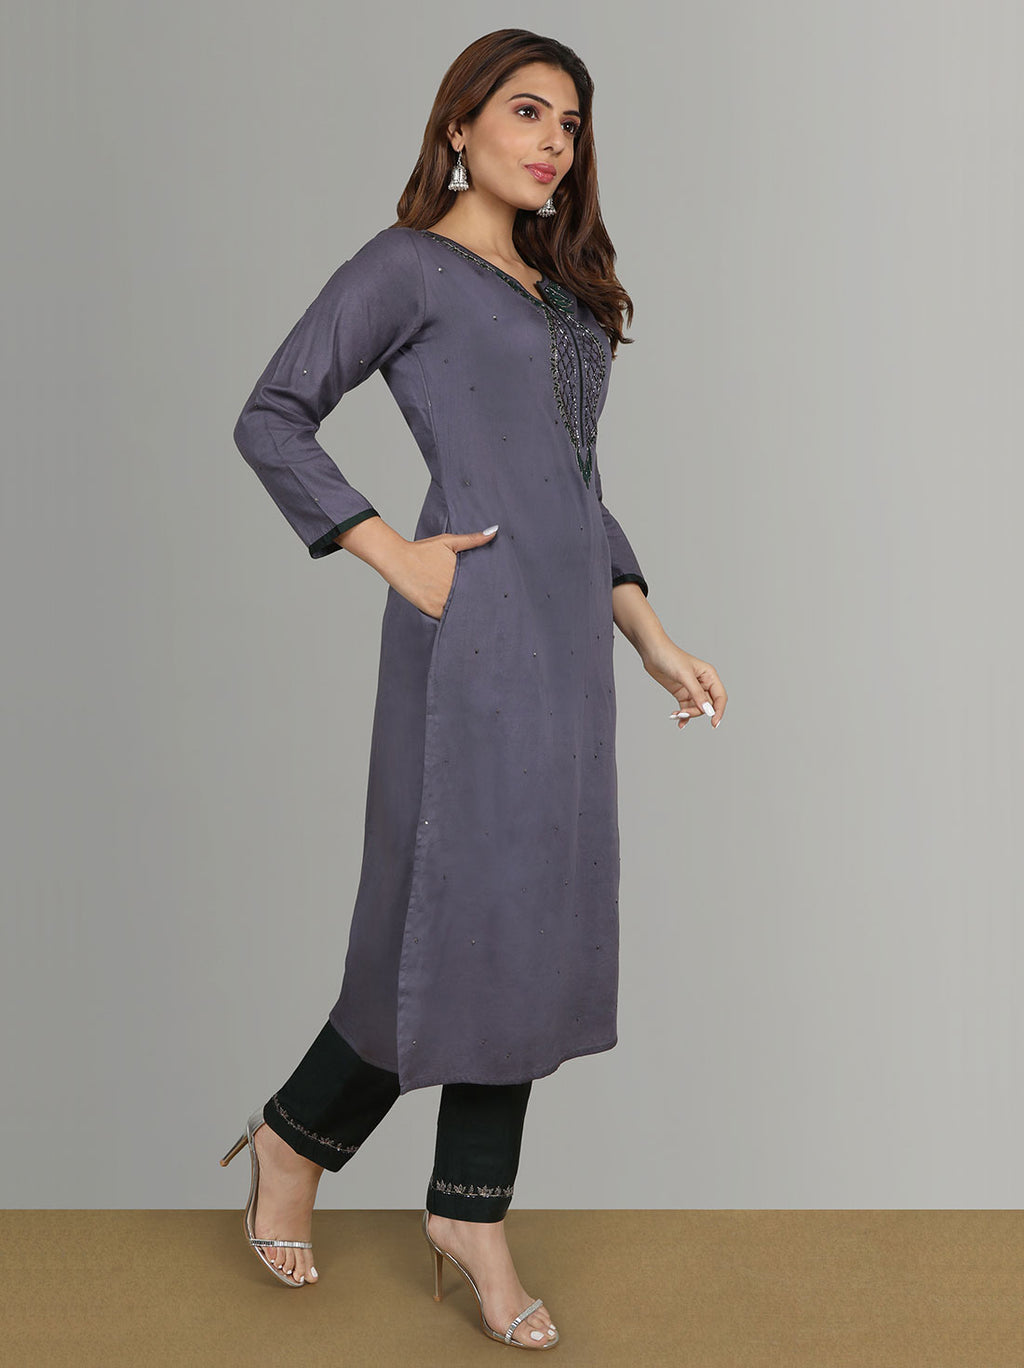 Cotton Kurtis - Violet Grey Cotton Kurti With Bottle Green Pants